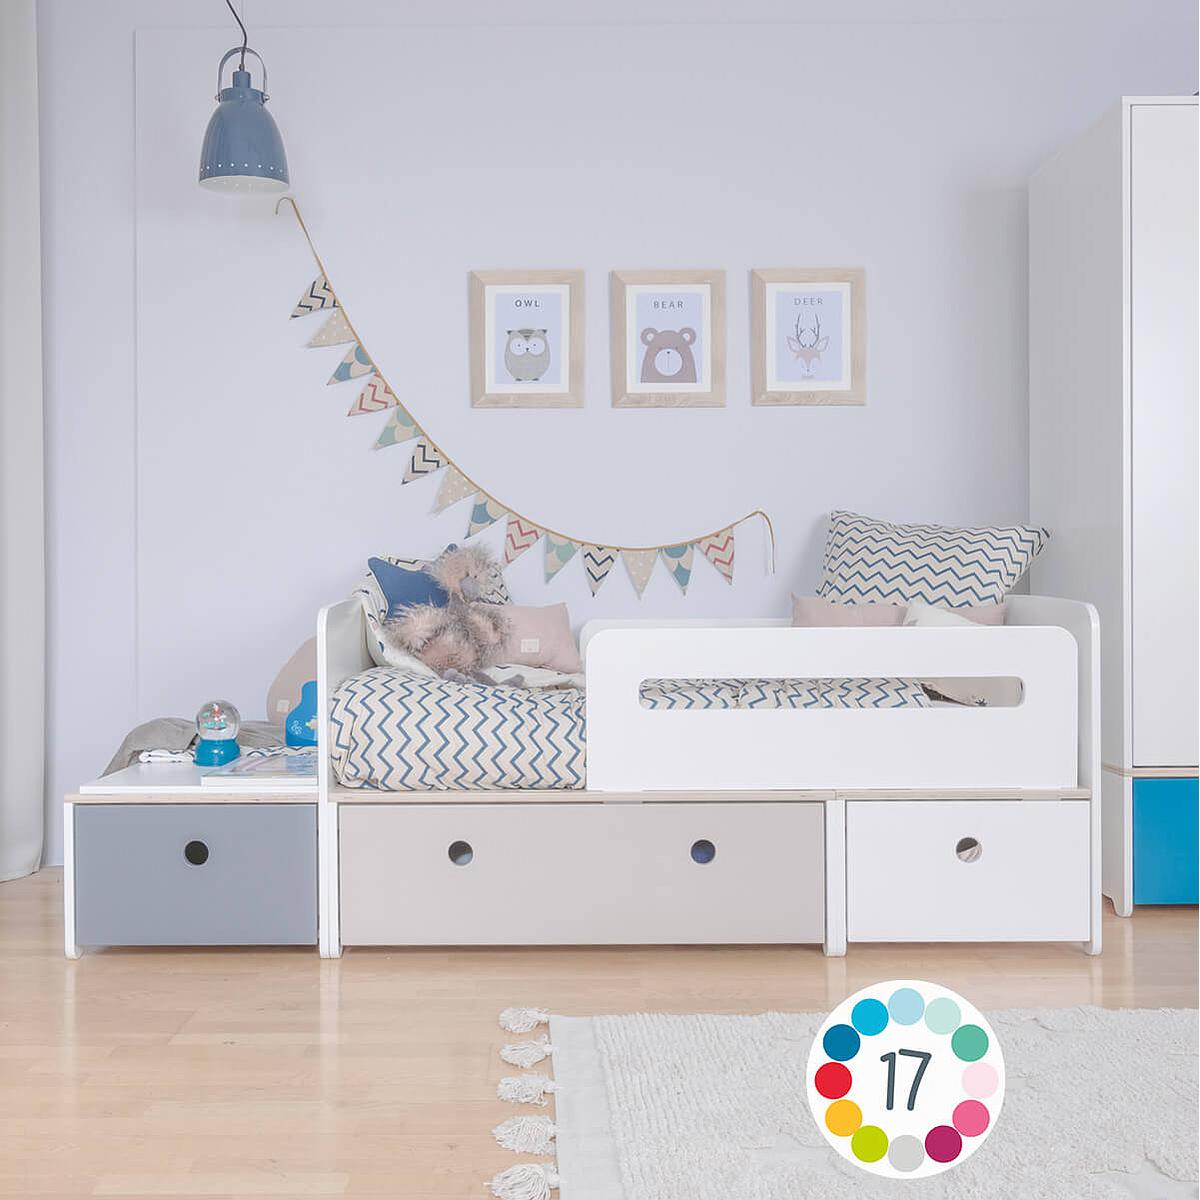 Cama evolutiva infantil 90x150/200cm COLORFLEX white-pearl grey-white